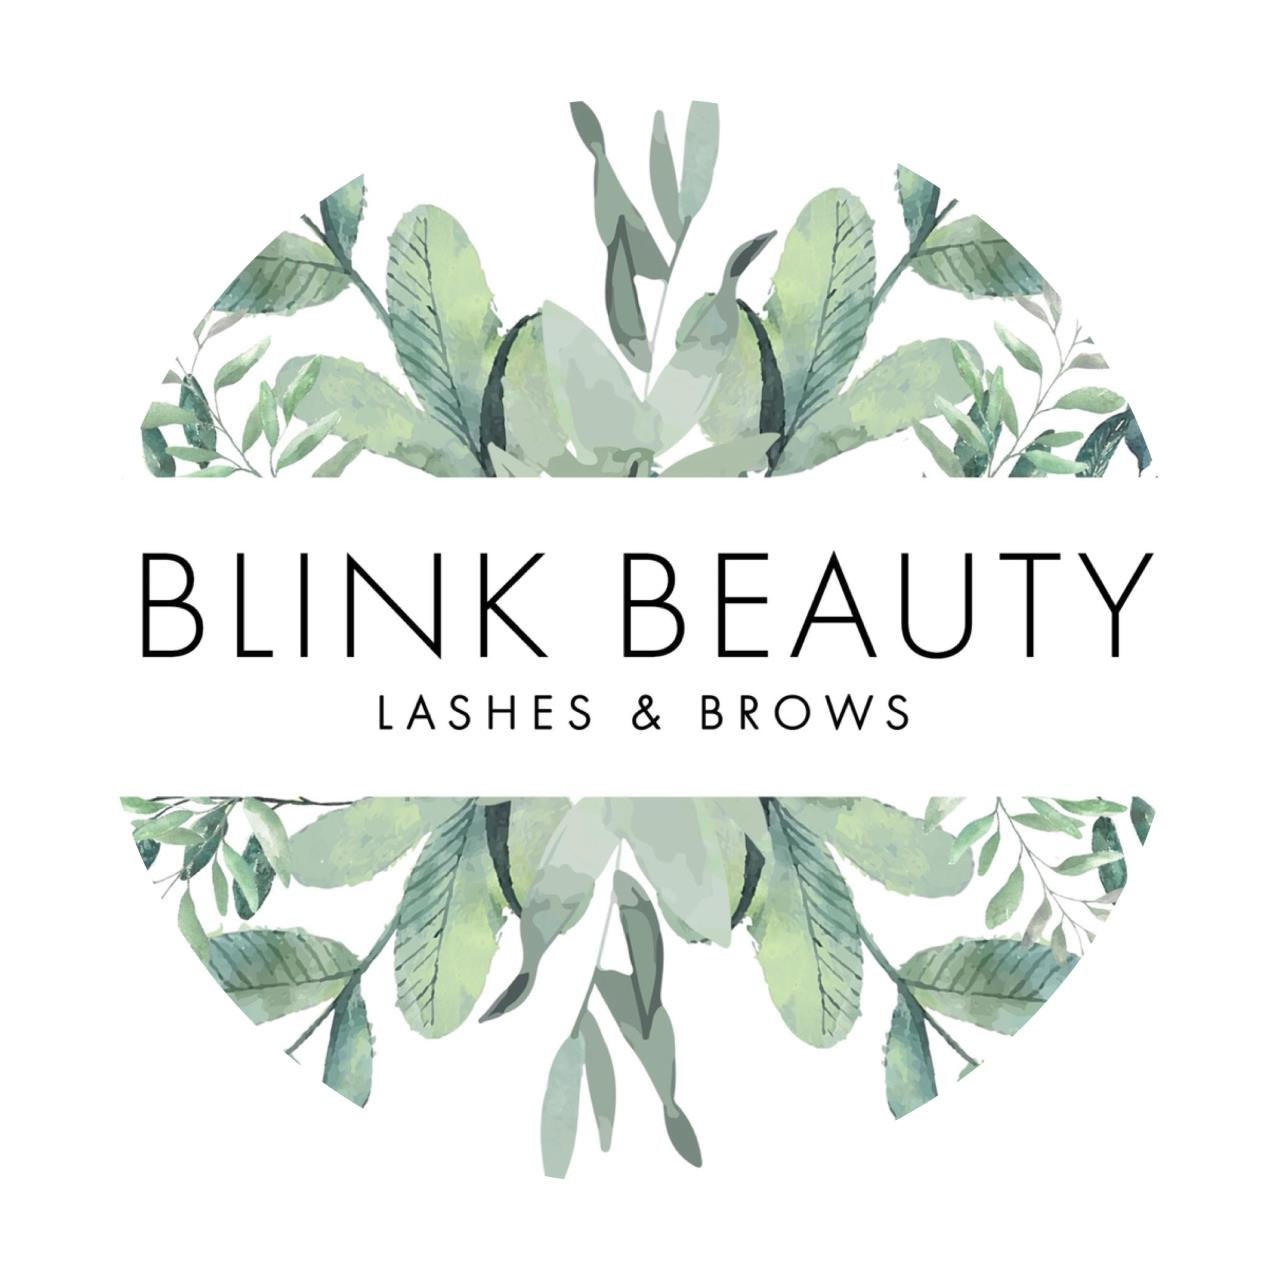 BLINK BEAUTY